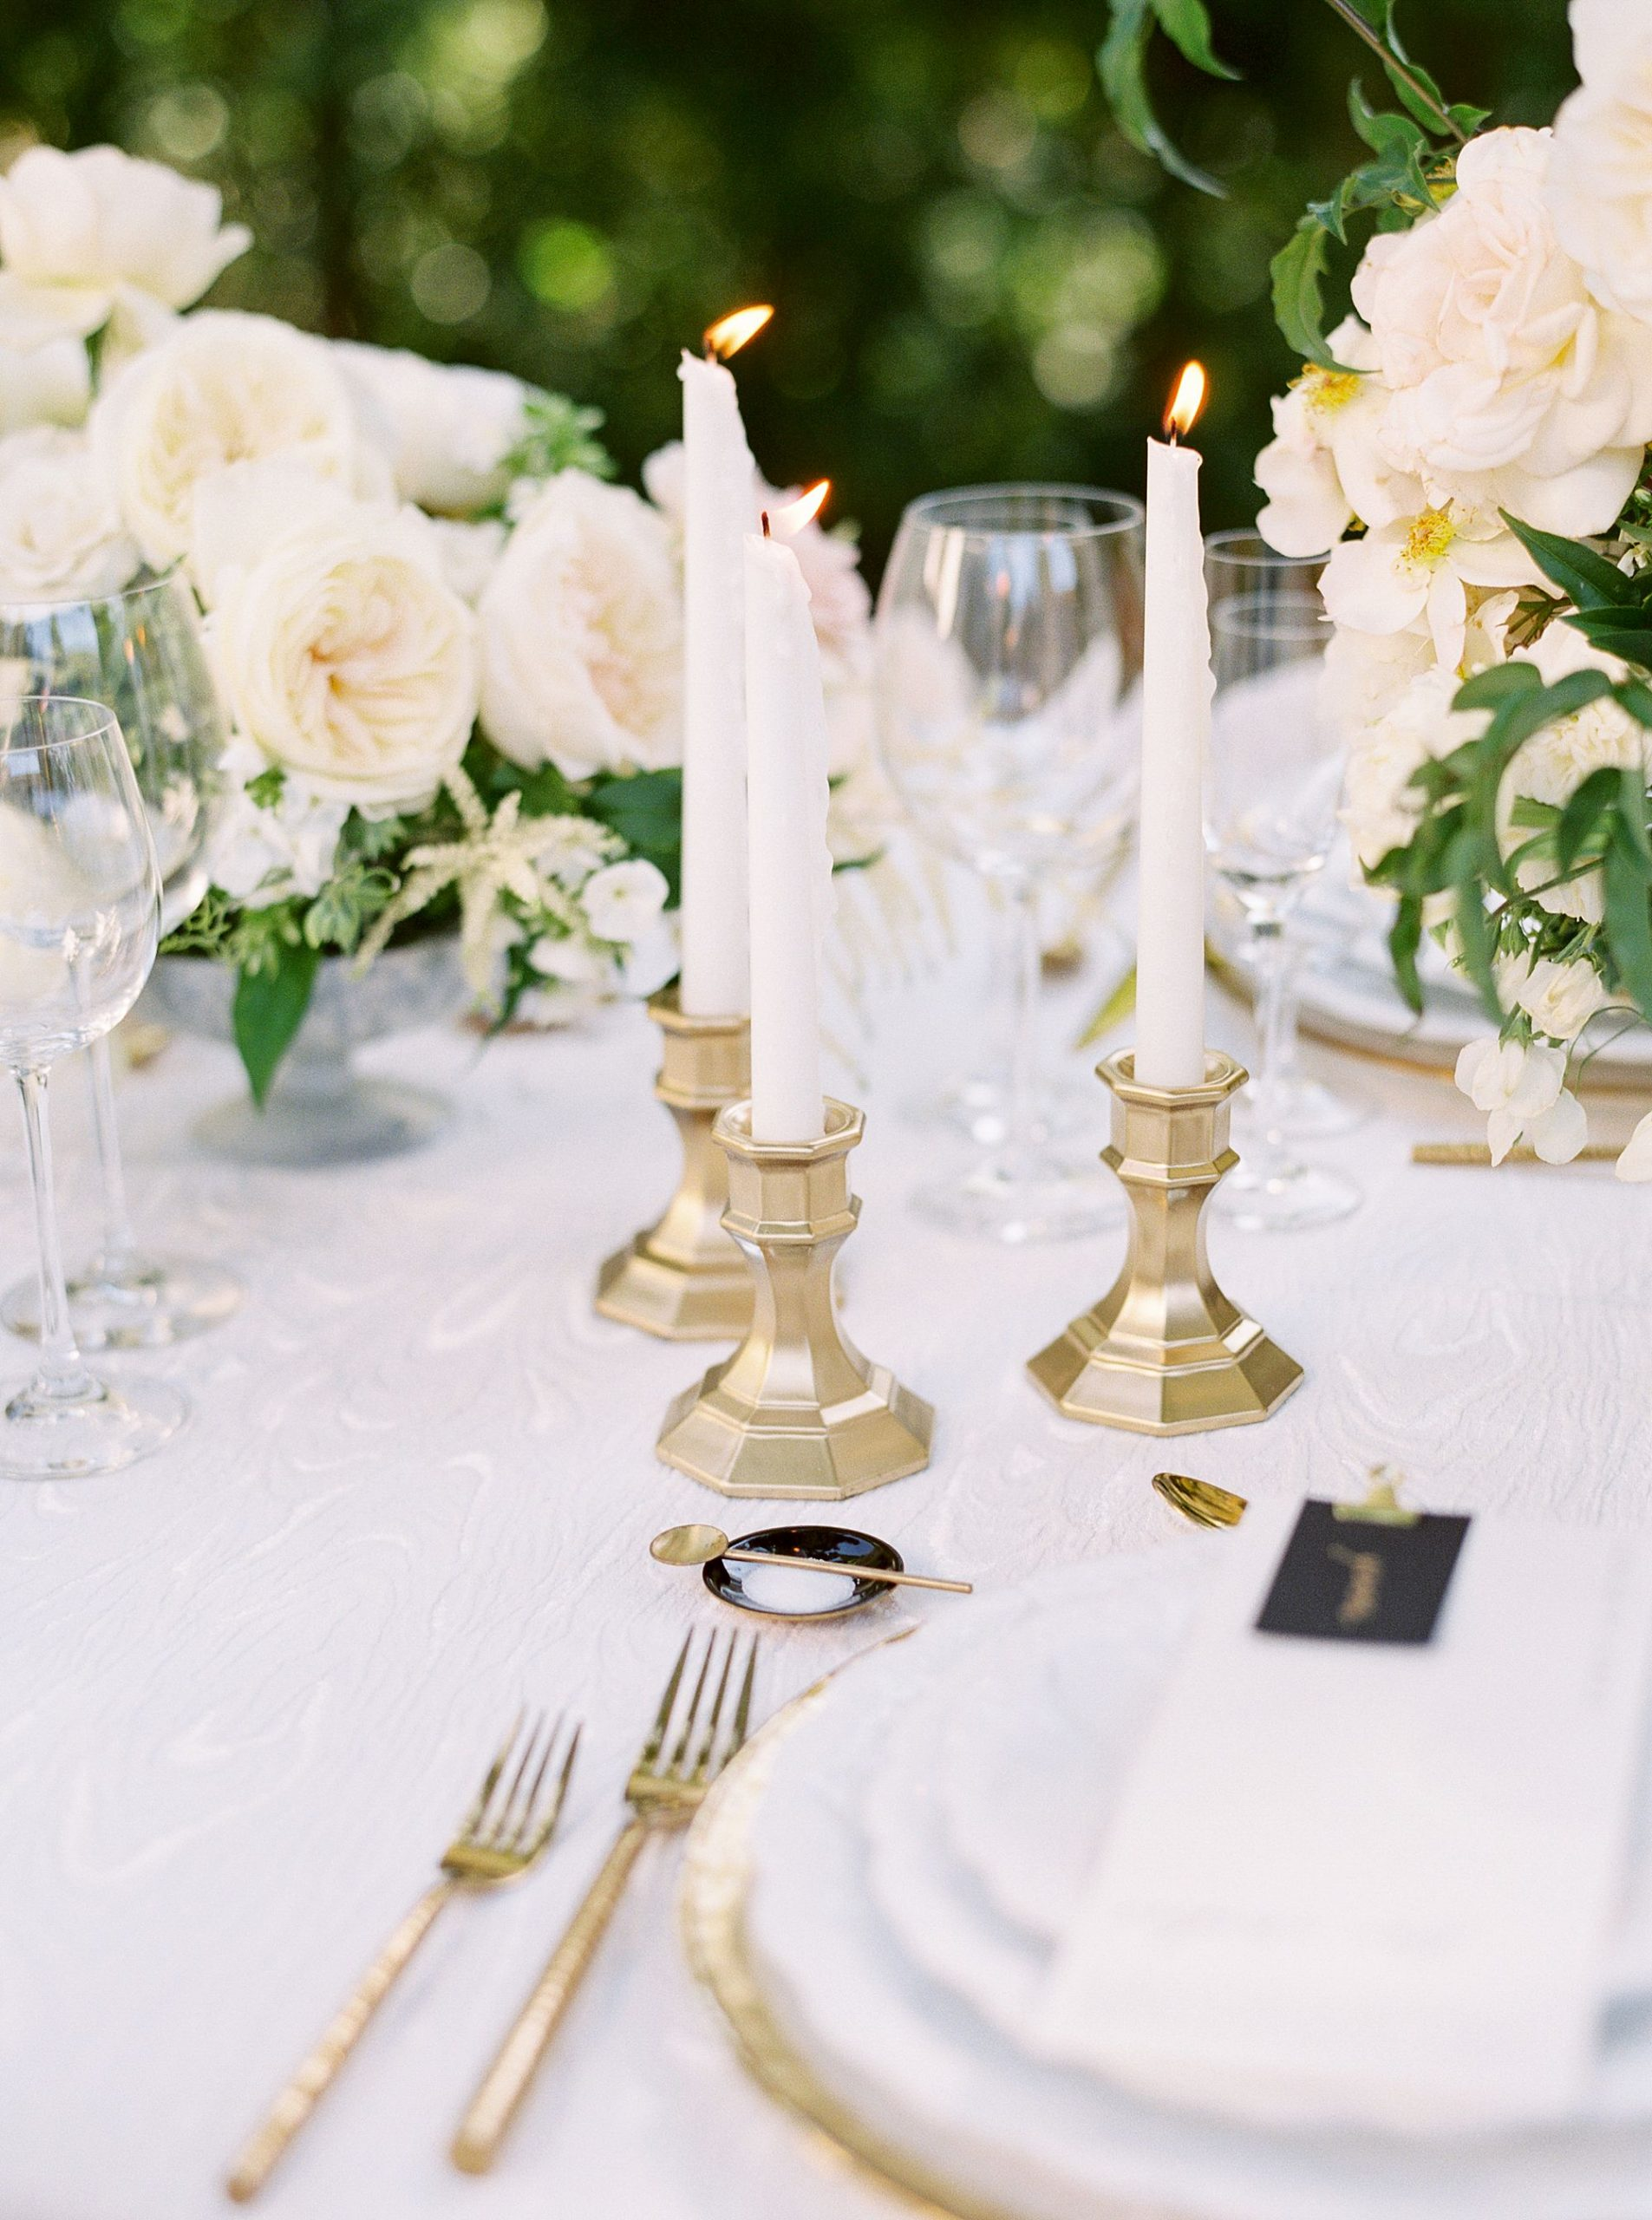 Park Winters Micro-Wedding Inspiration on Style Me Pretty - Stephanie Teague Events - Ashley Baumgartner - Park Winters Wedding - Black Tie Wedding - Micro-Wedding Sacramento Photographer_0068.jpg